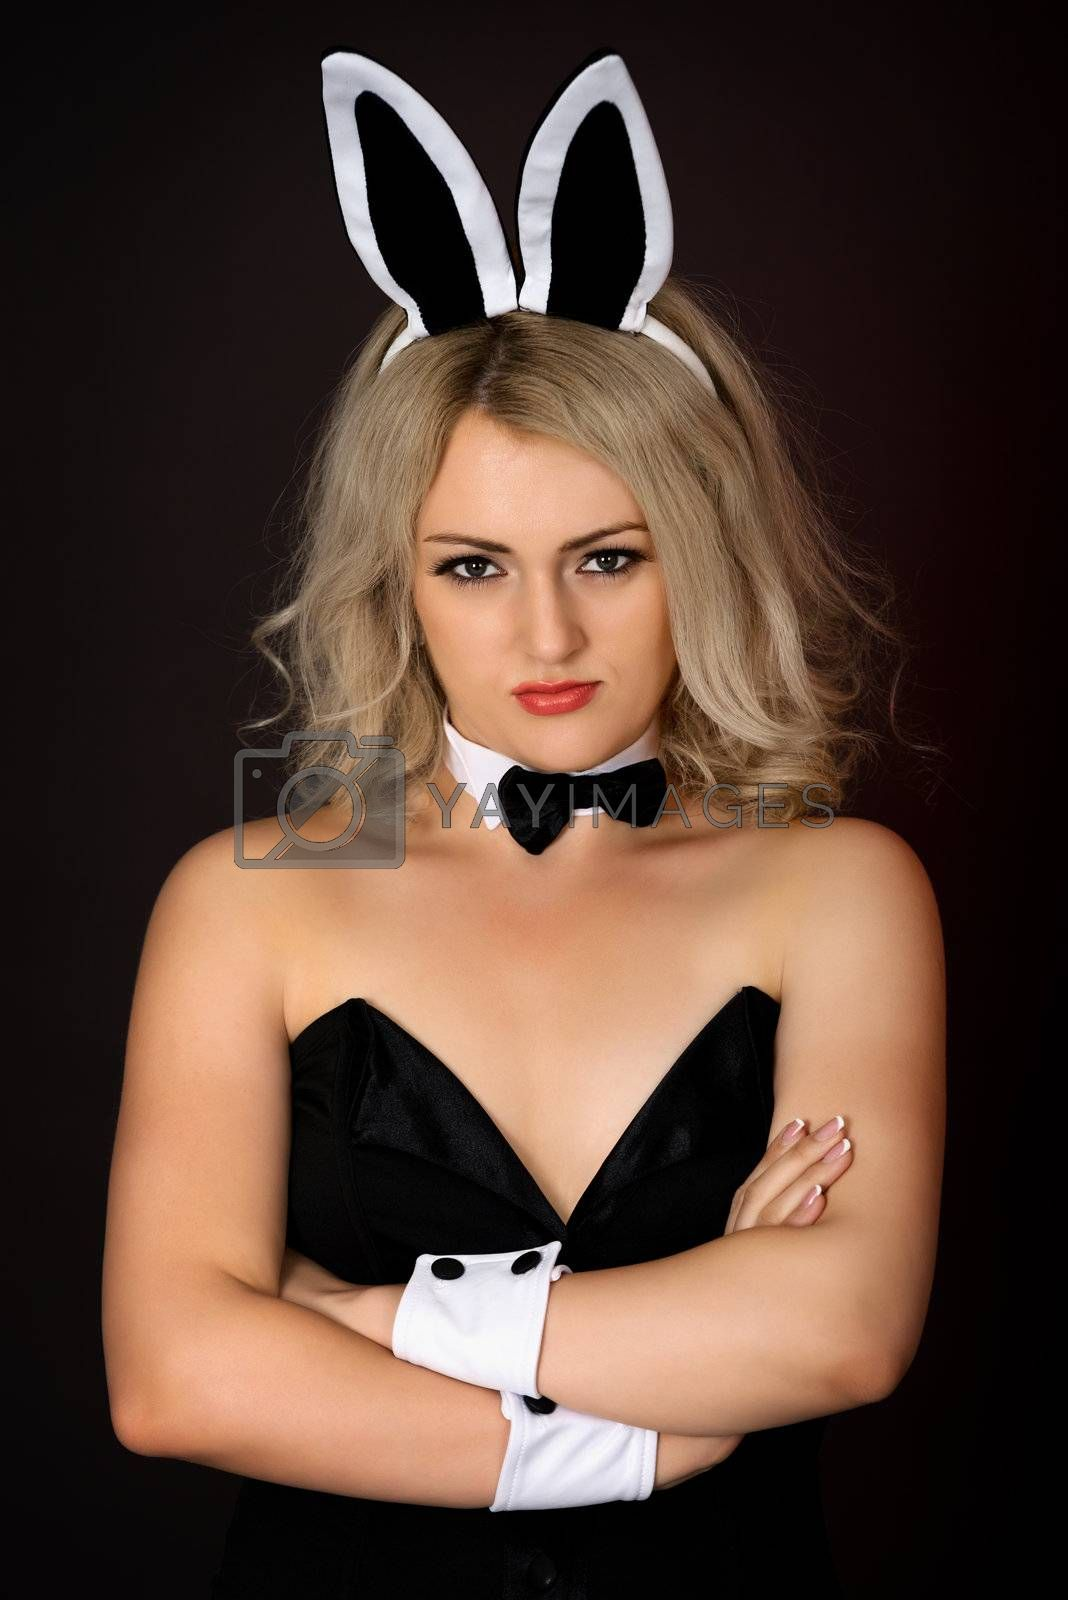 A sullen girl in sexy bunny costume against a dark background